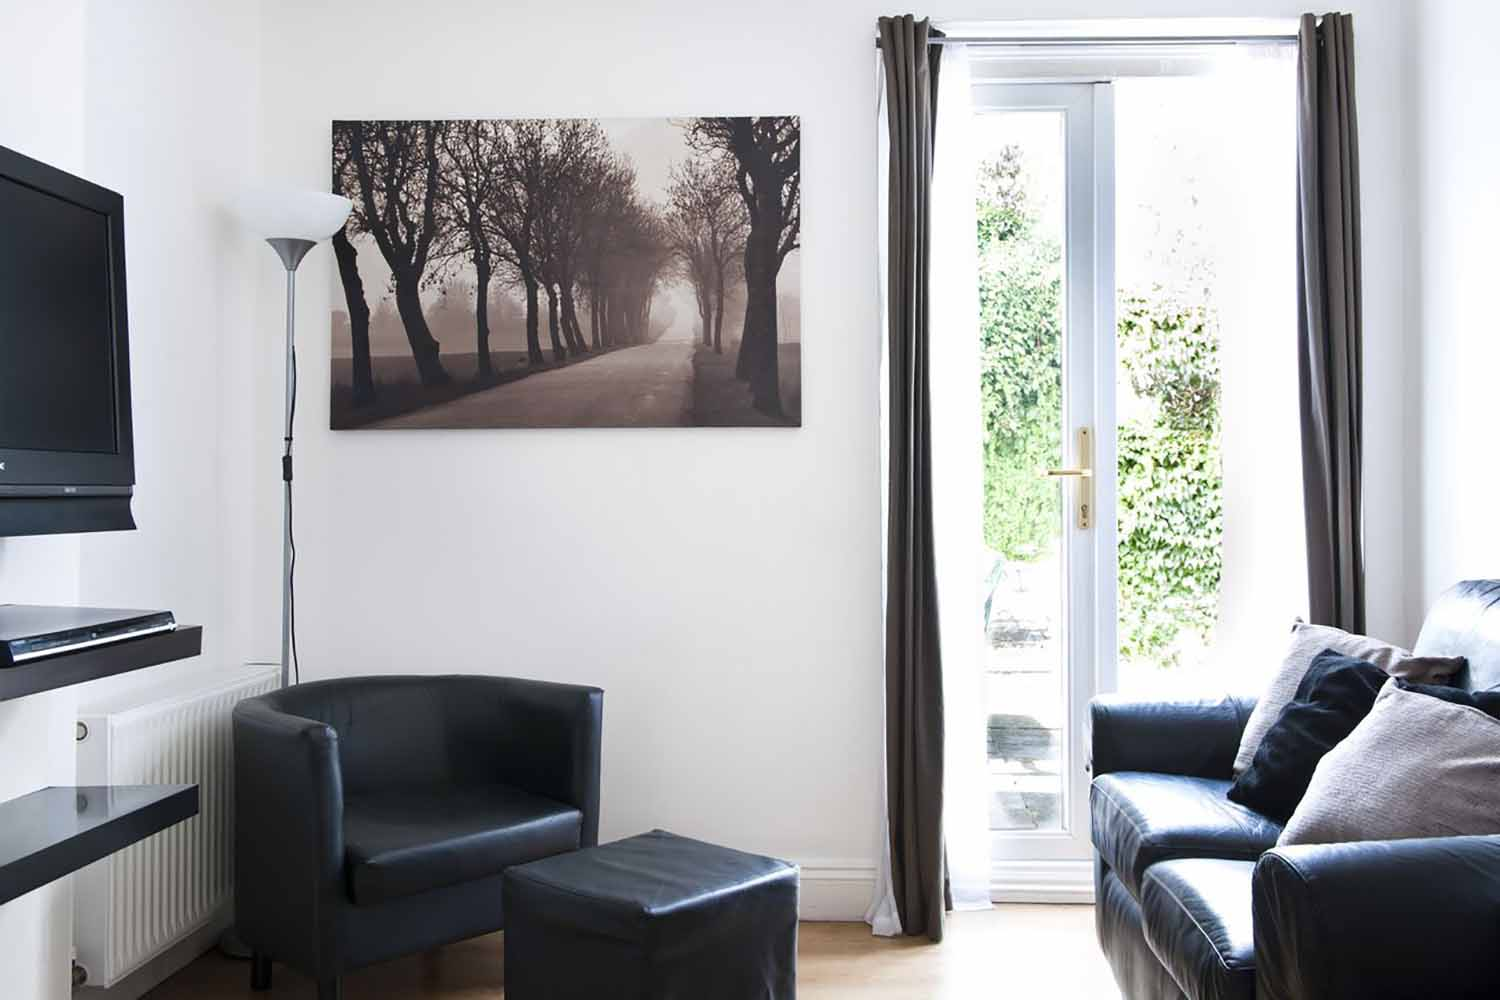 London Central_Acc_Shared apartments_living room_03